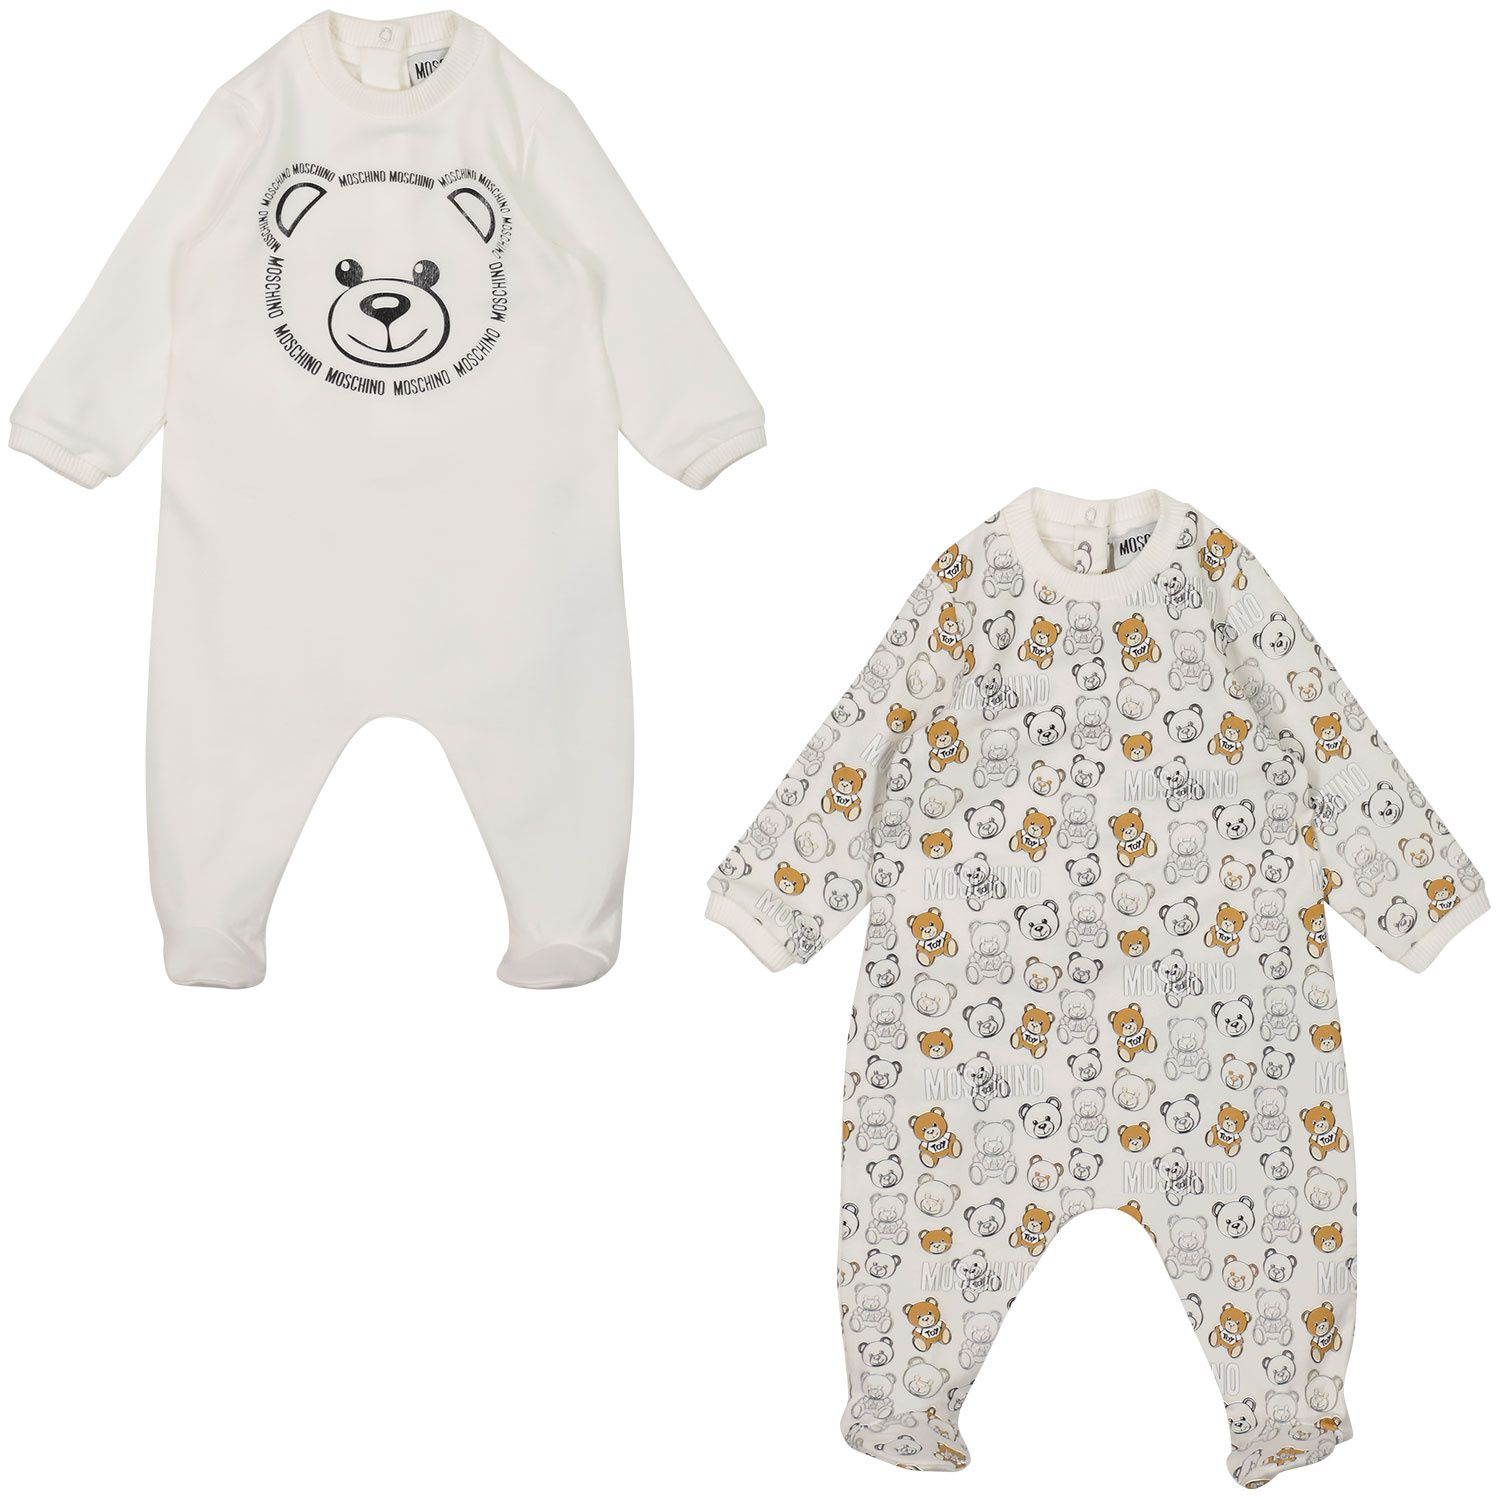 Picture of Moschino MOY02C baby playsuit white